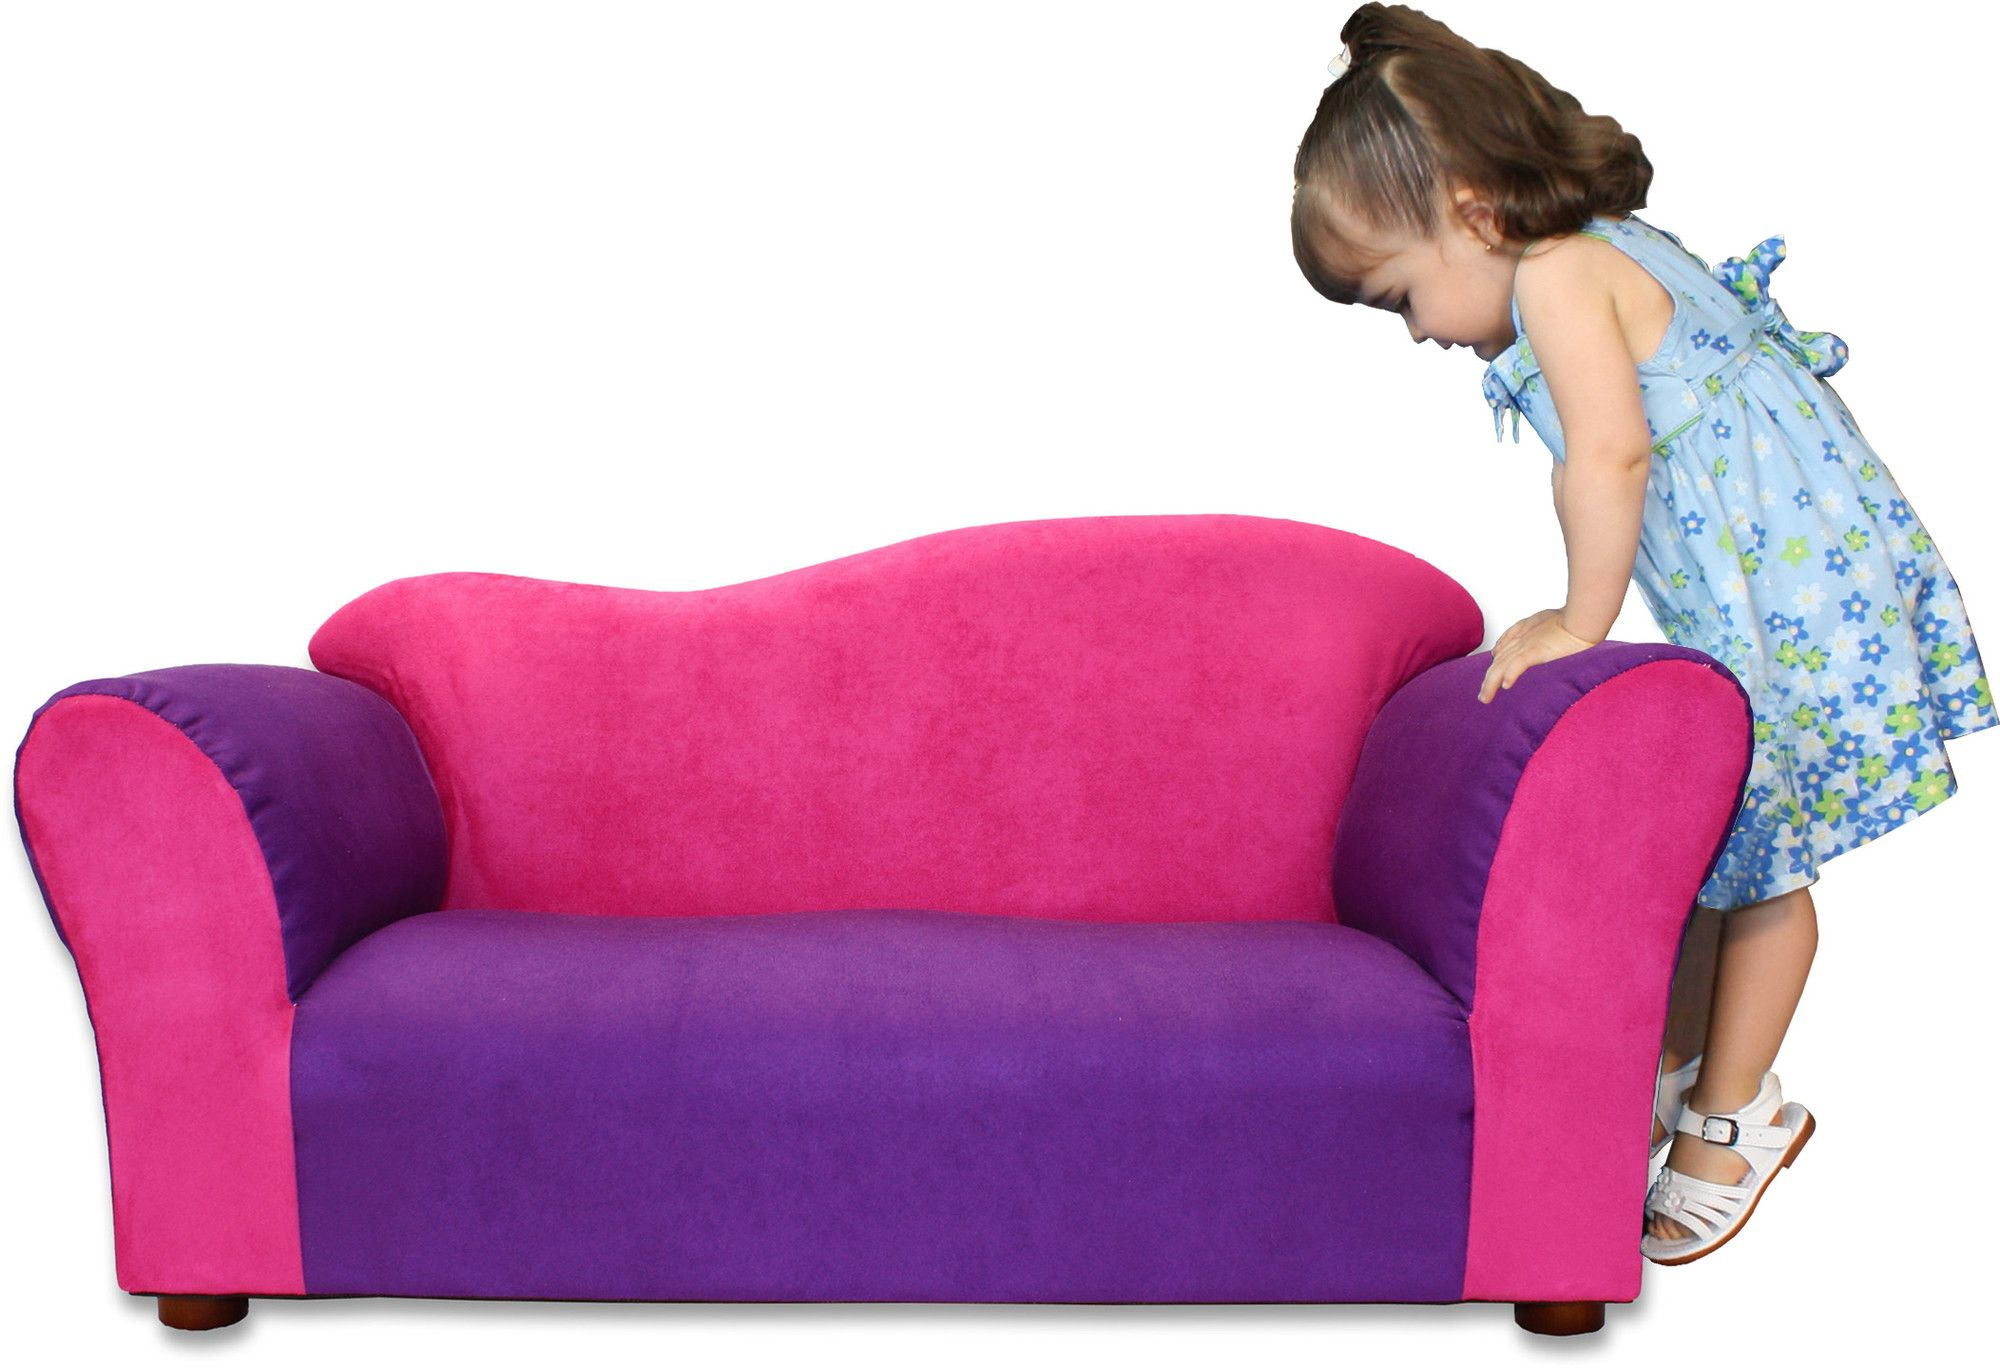 3 Year Old Girls Gifts With Regard To Current Toddler Sofa Chairs (Gallery 5 of 20)